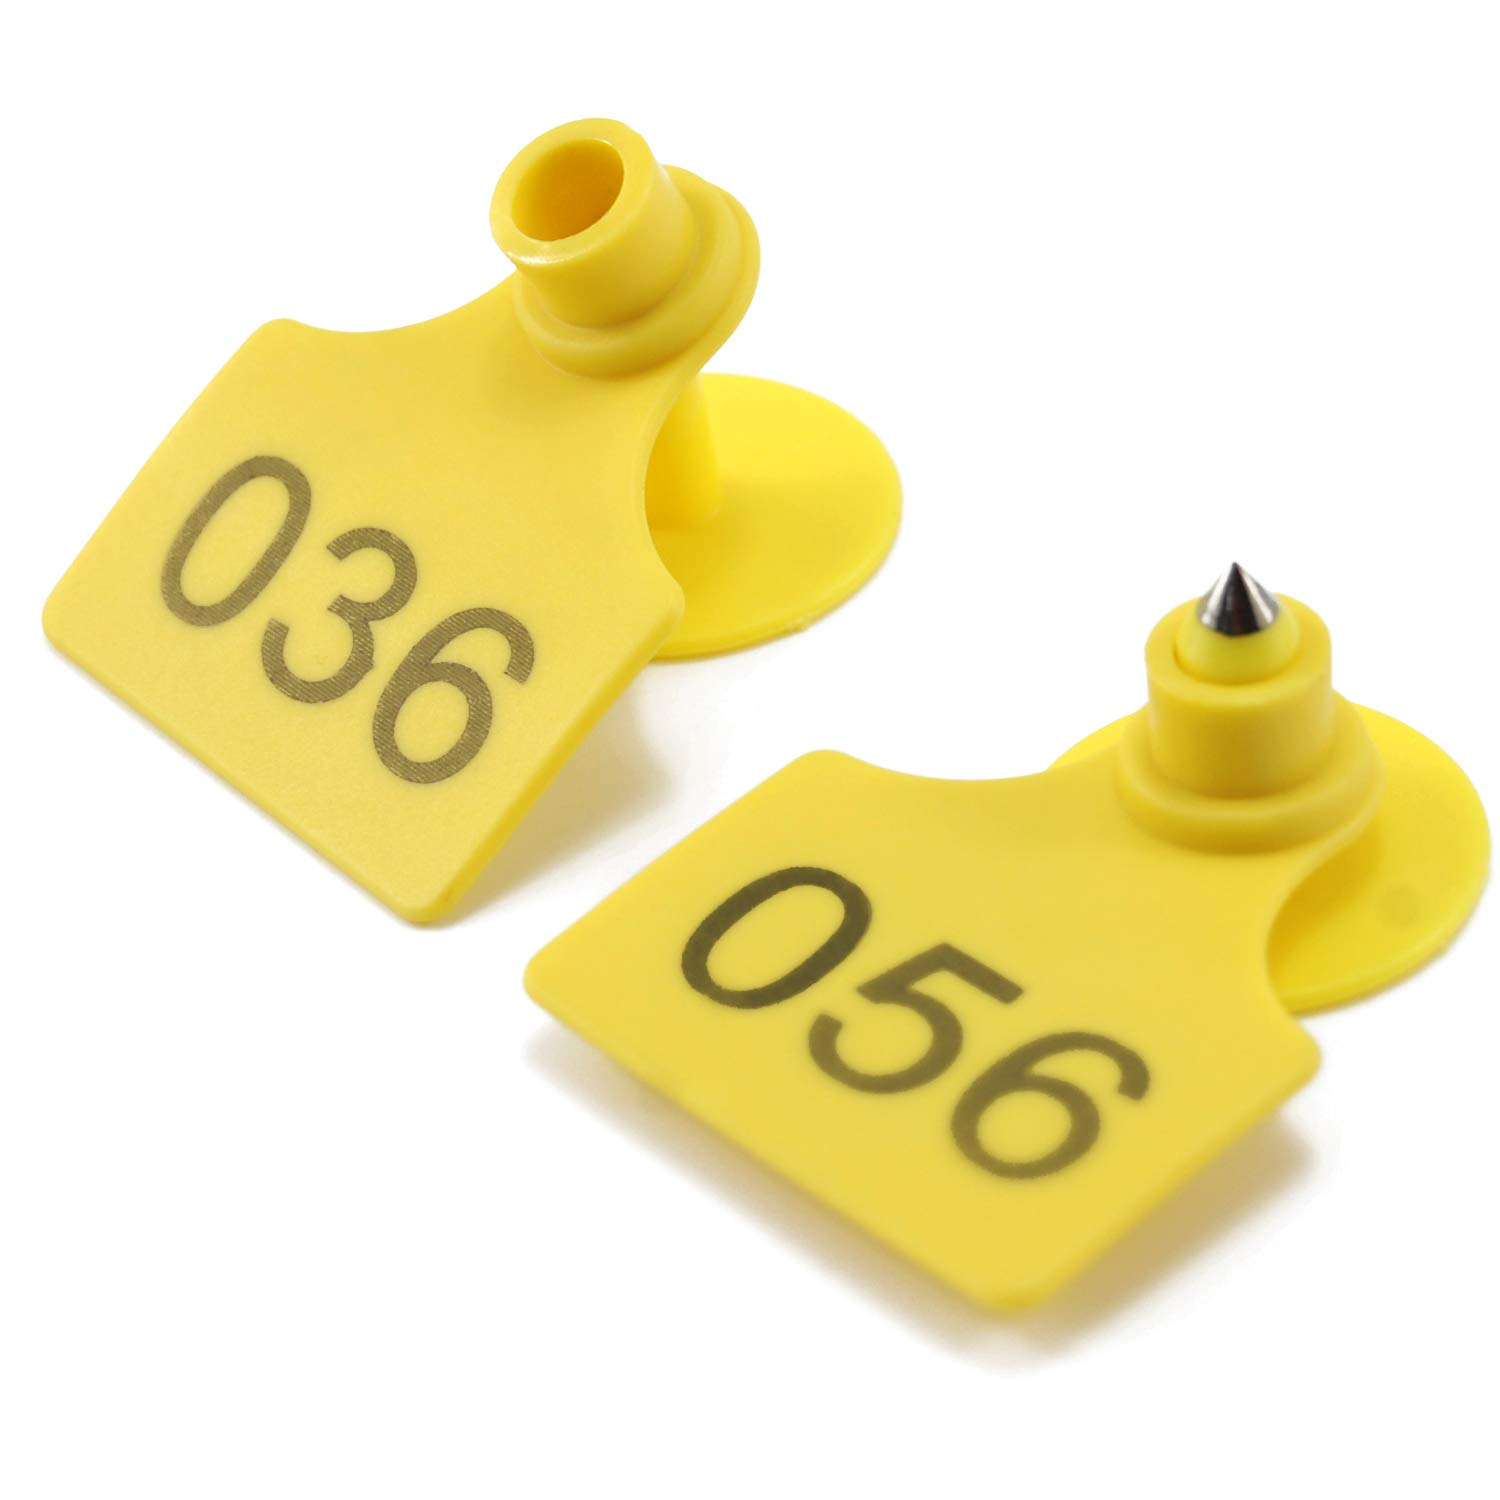 Livestock Identification Number Farm Animal Ear Tags for Goats Sheep Cattle Cows Pigs Rabbit Plastic TPU Precision Ear Tags 100pcs, Yellow by Geentai